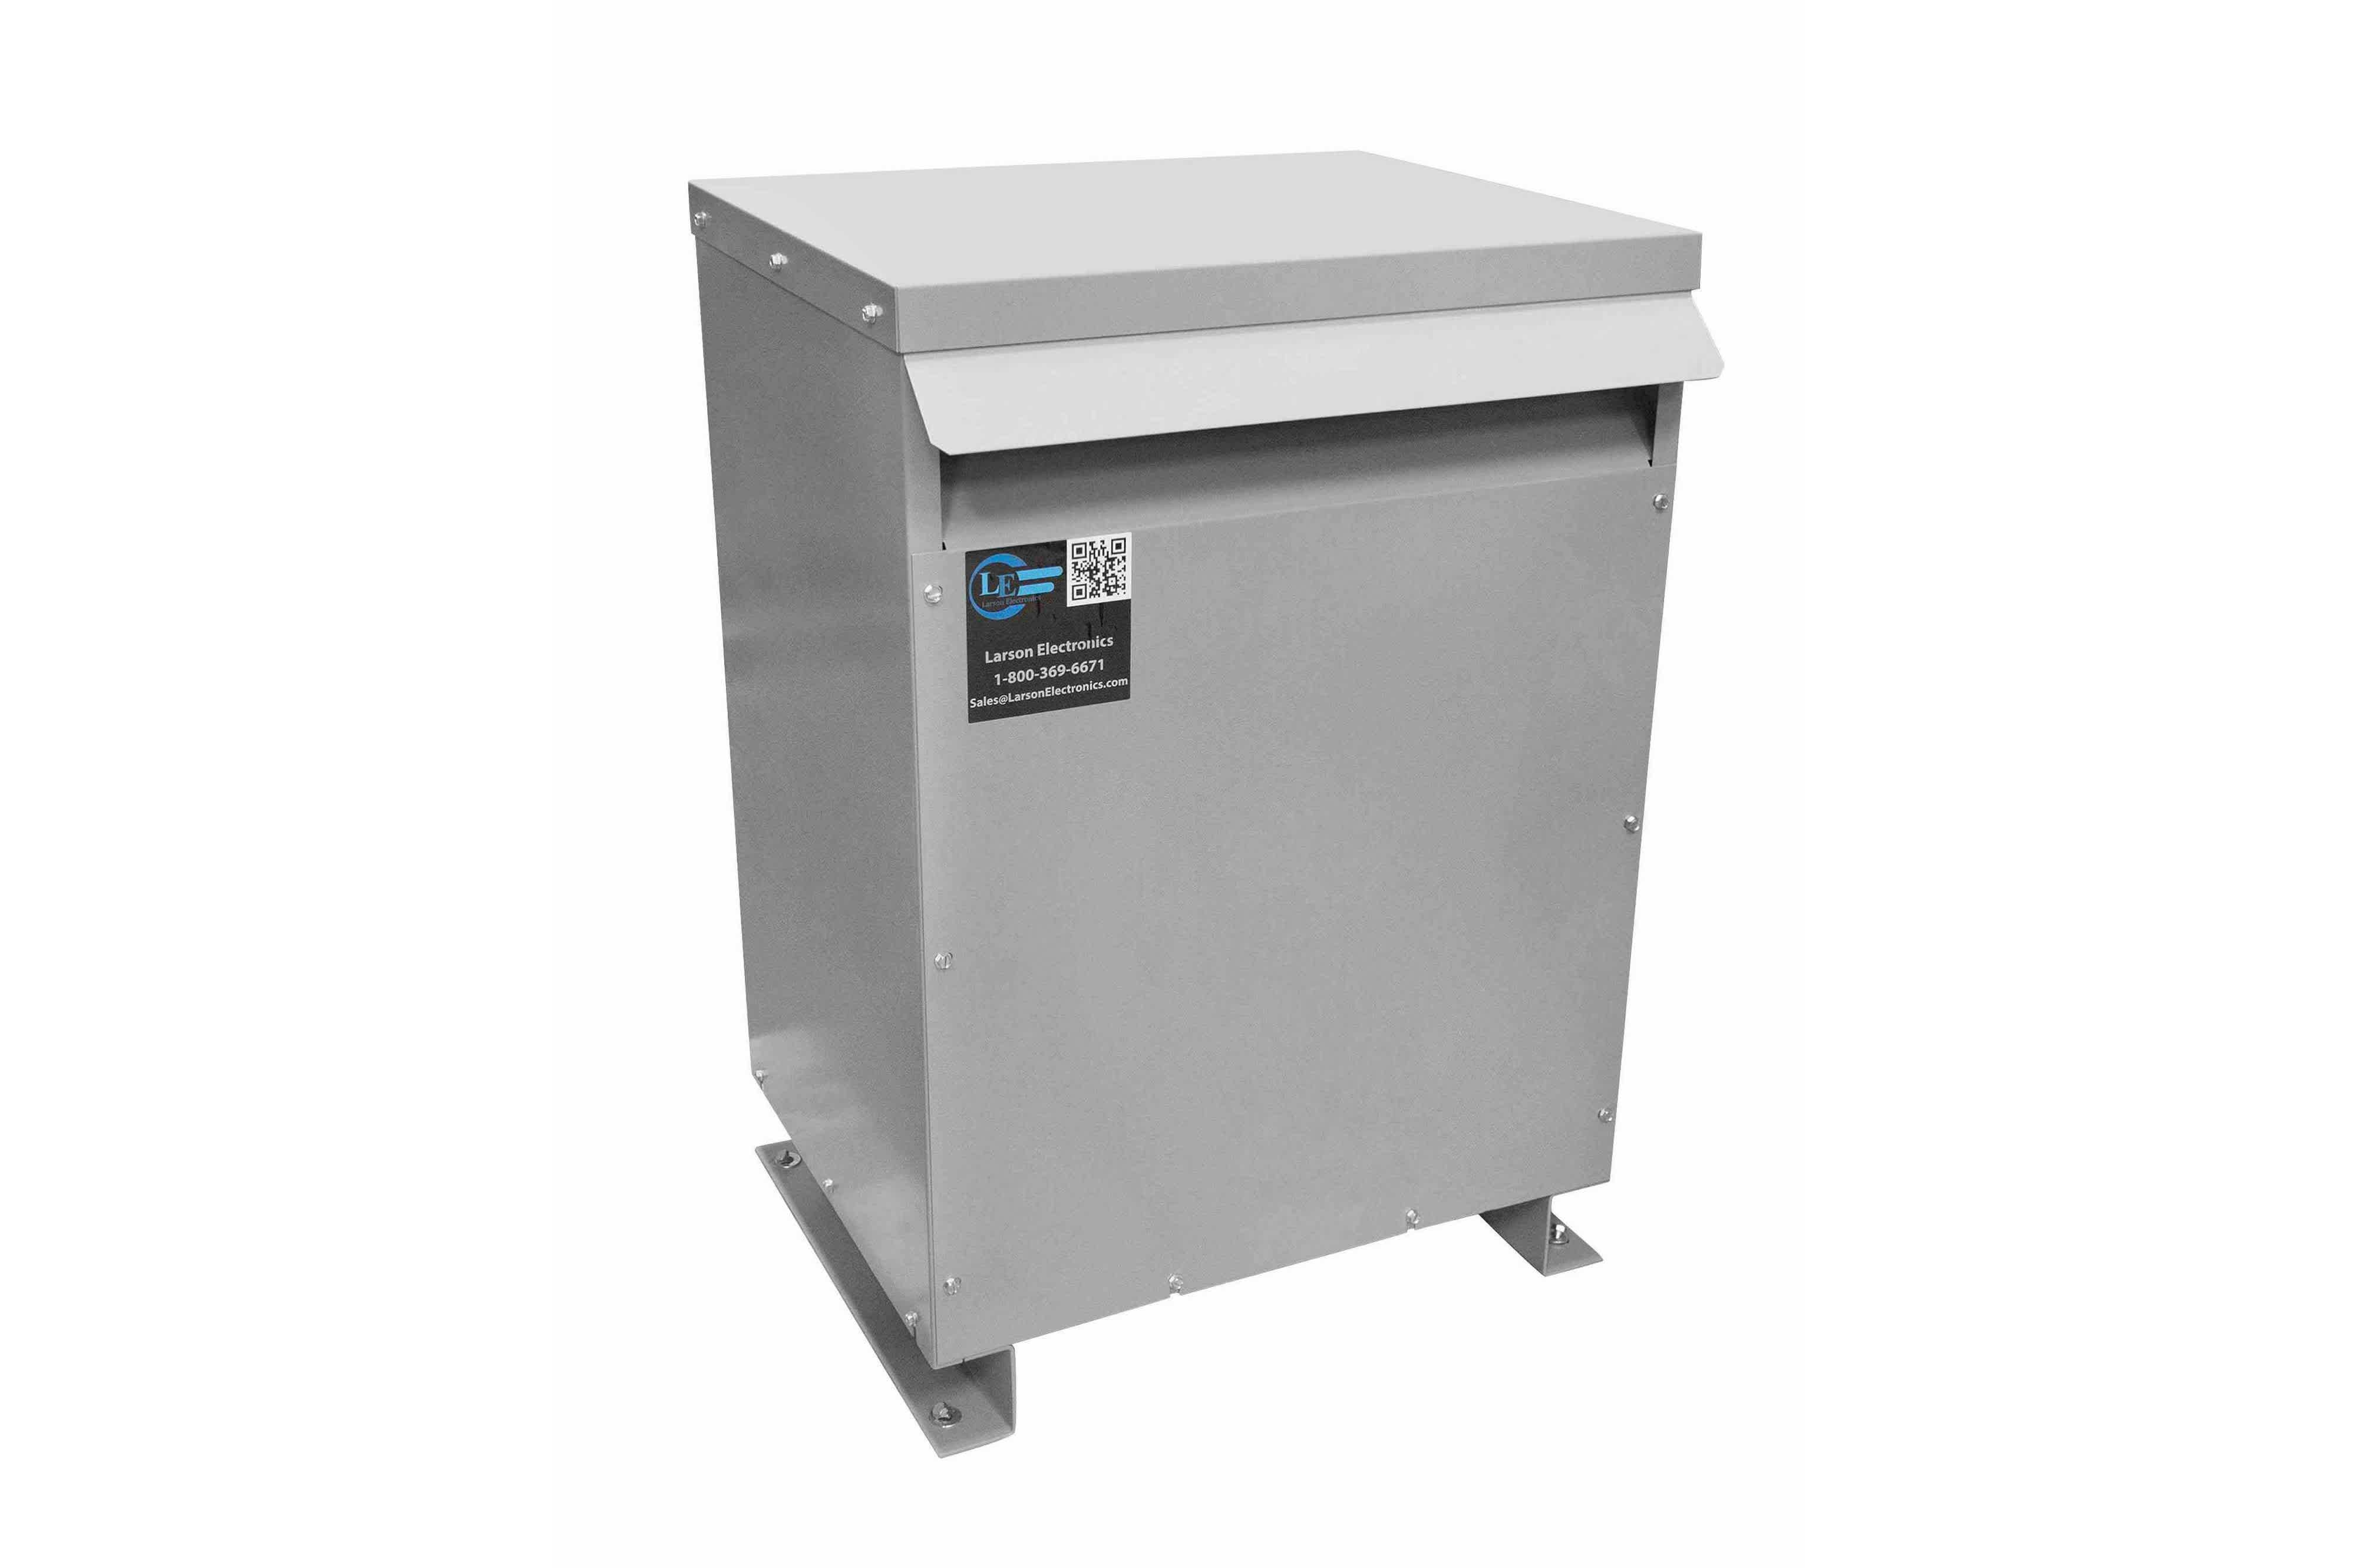 50 kVA 3PH Isolation Transformer, 600V Wye Primary, 400V Delta Secondary, N3R, Ventilated, 60 Hz